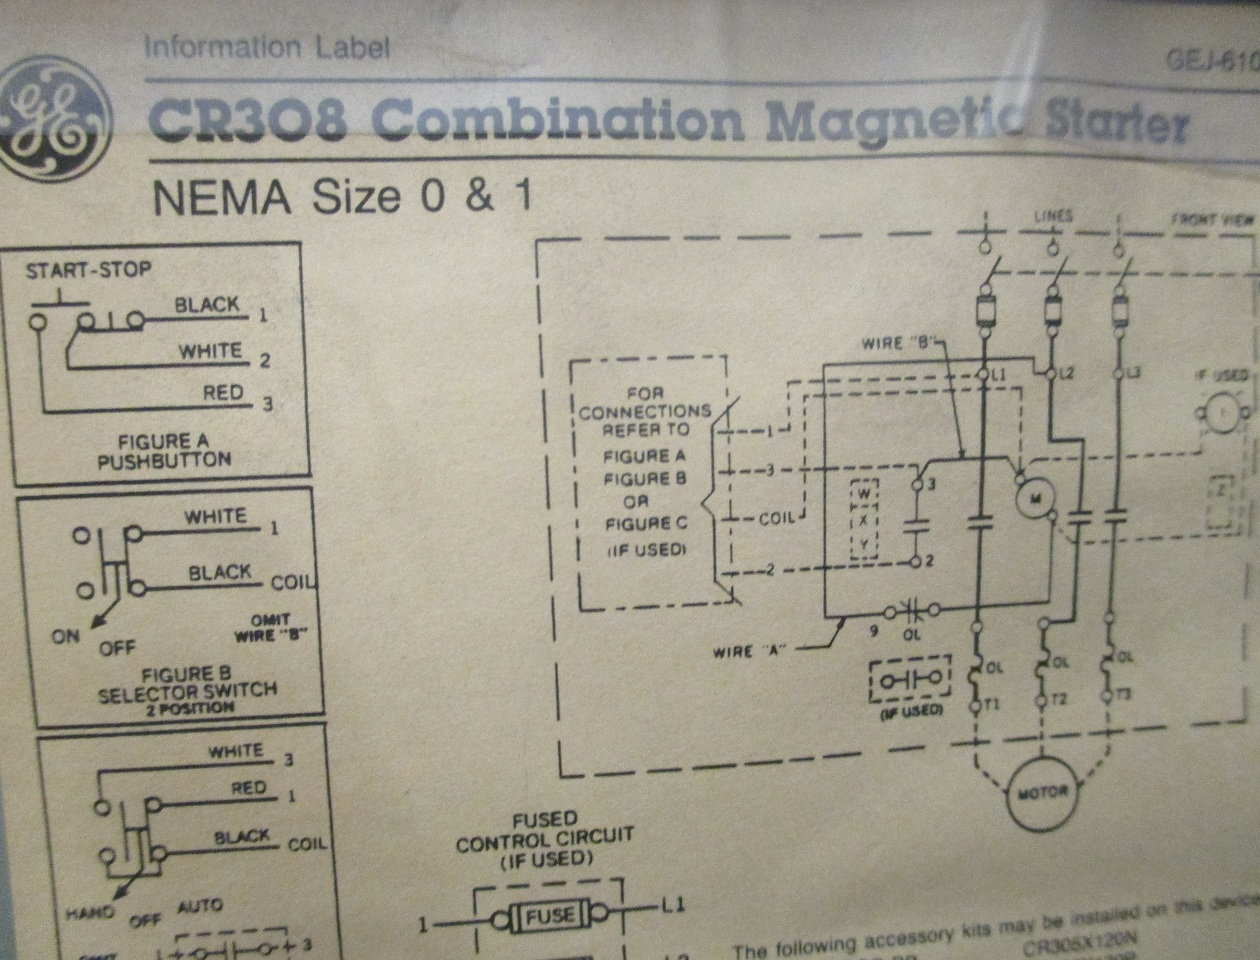 dis3585 ge combination magnetic starter cr308 600v max complete enclosure 300 line control 3?resize\=665%2C507 ge cr 308 motor starter wiring diagram wiring diagrams  at virtualis.co